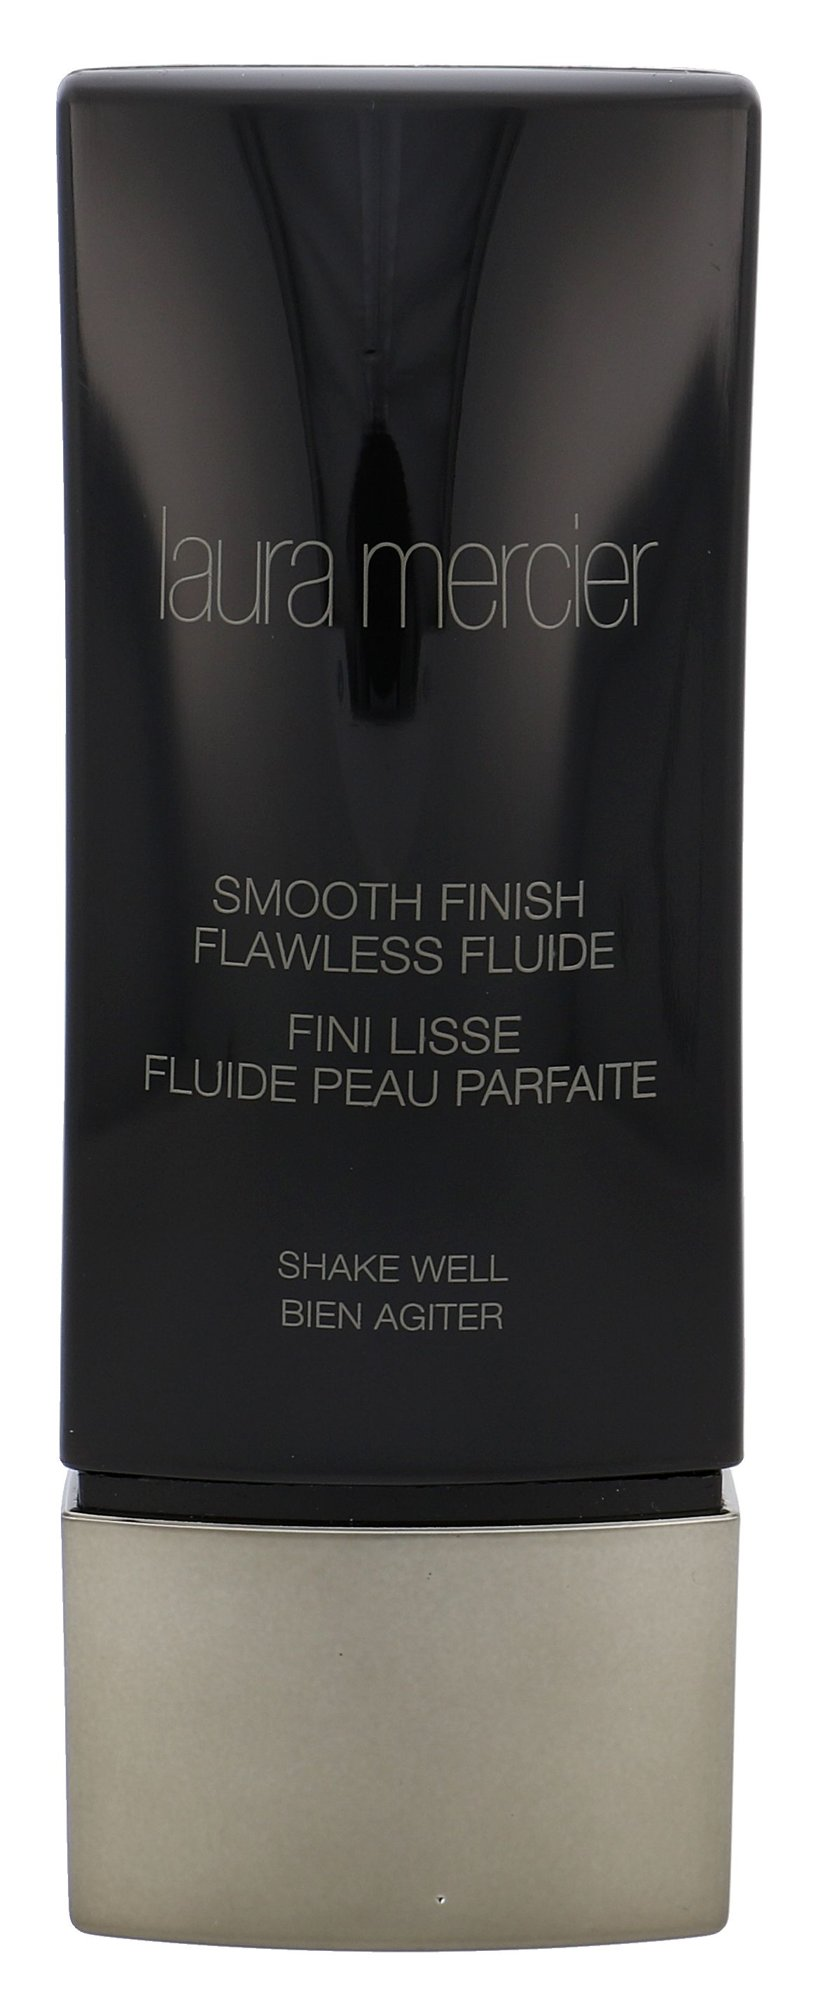 Laura Mercier Smooth Finish Flawless Fluide Cosmetic 30ml Vanillé